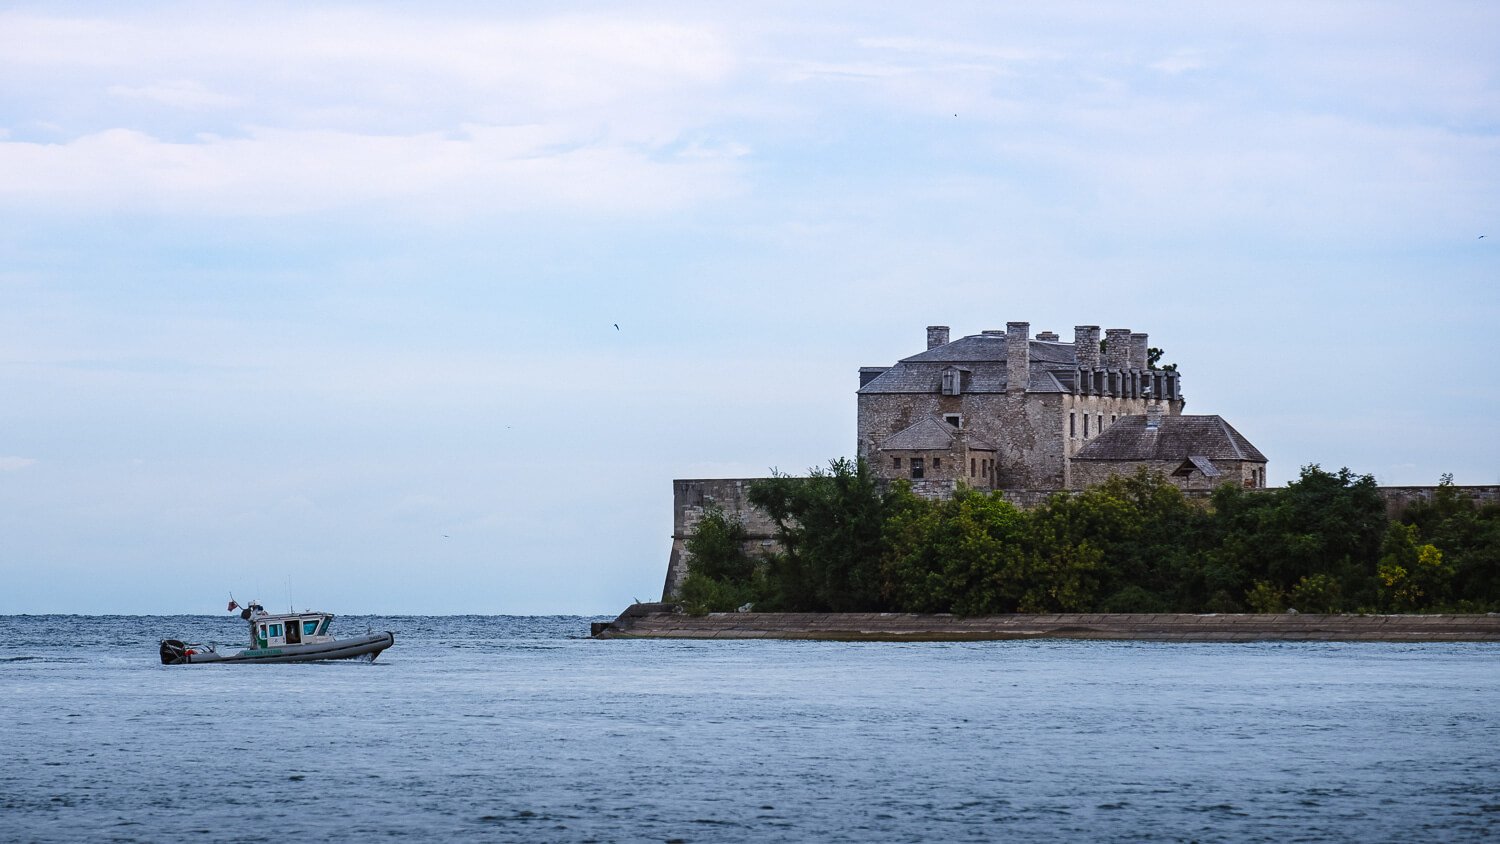 Views of the Old Fort Niagara, USA